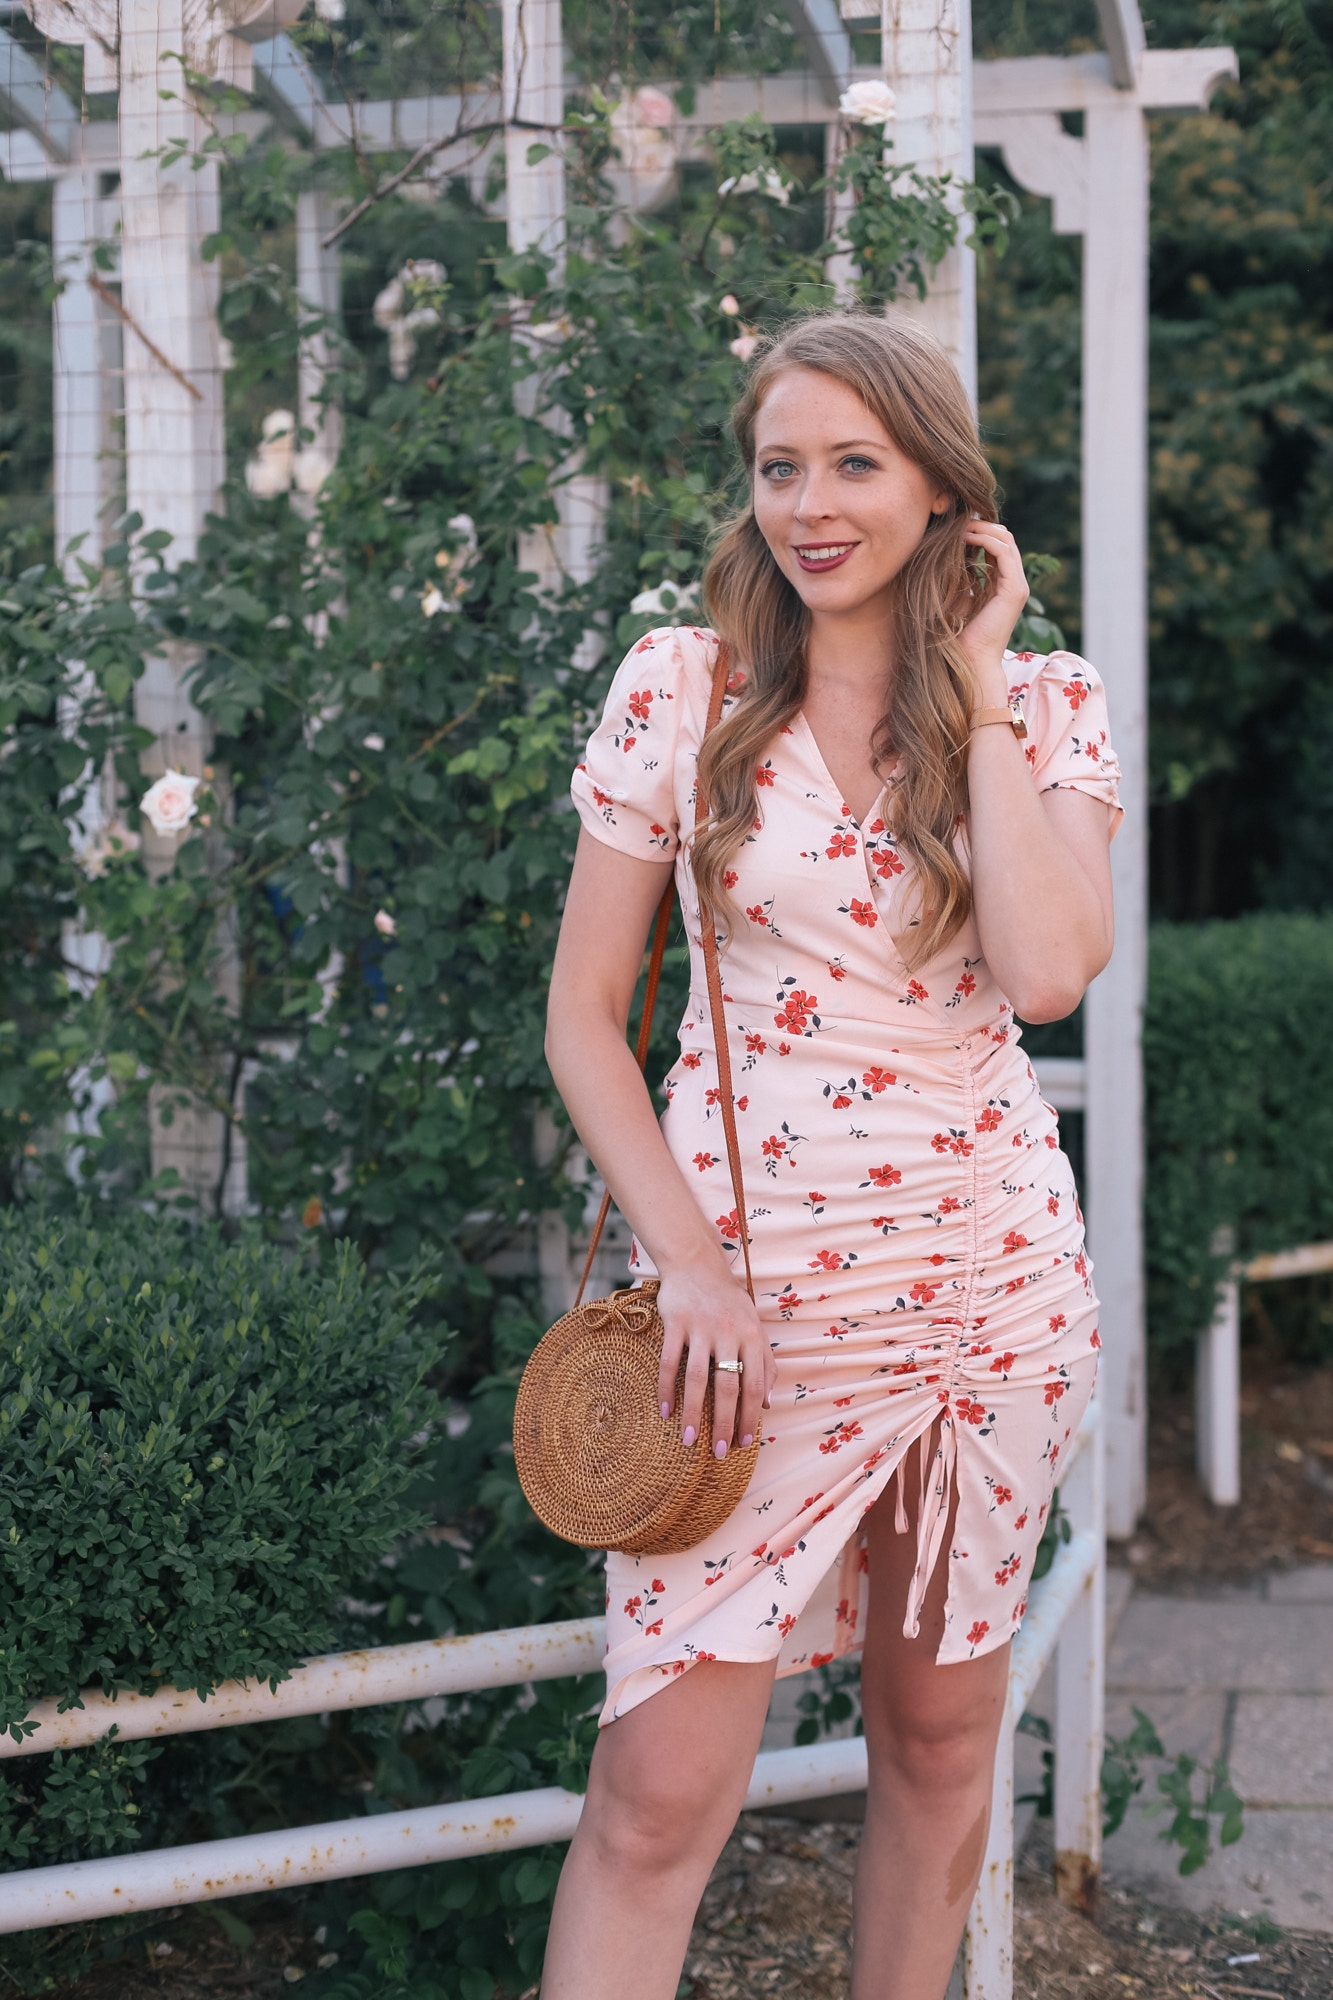 J.O.A. Cinch Front Dress - this chic rose print dress can transition from summer to fall with the right accessories.